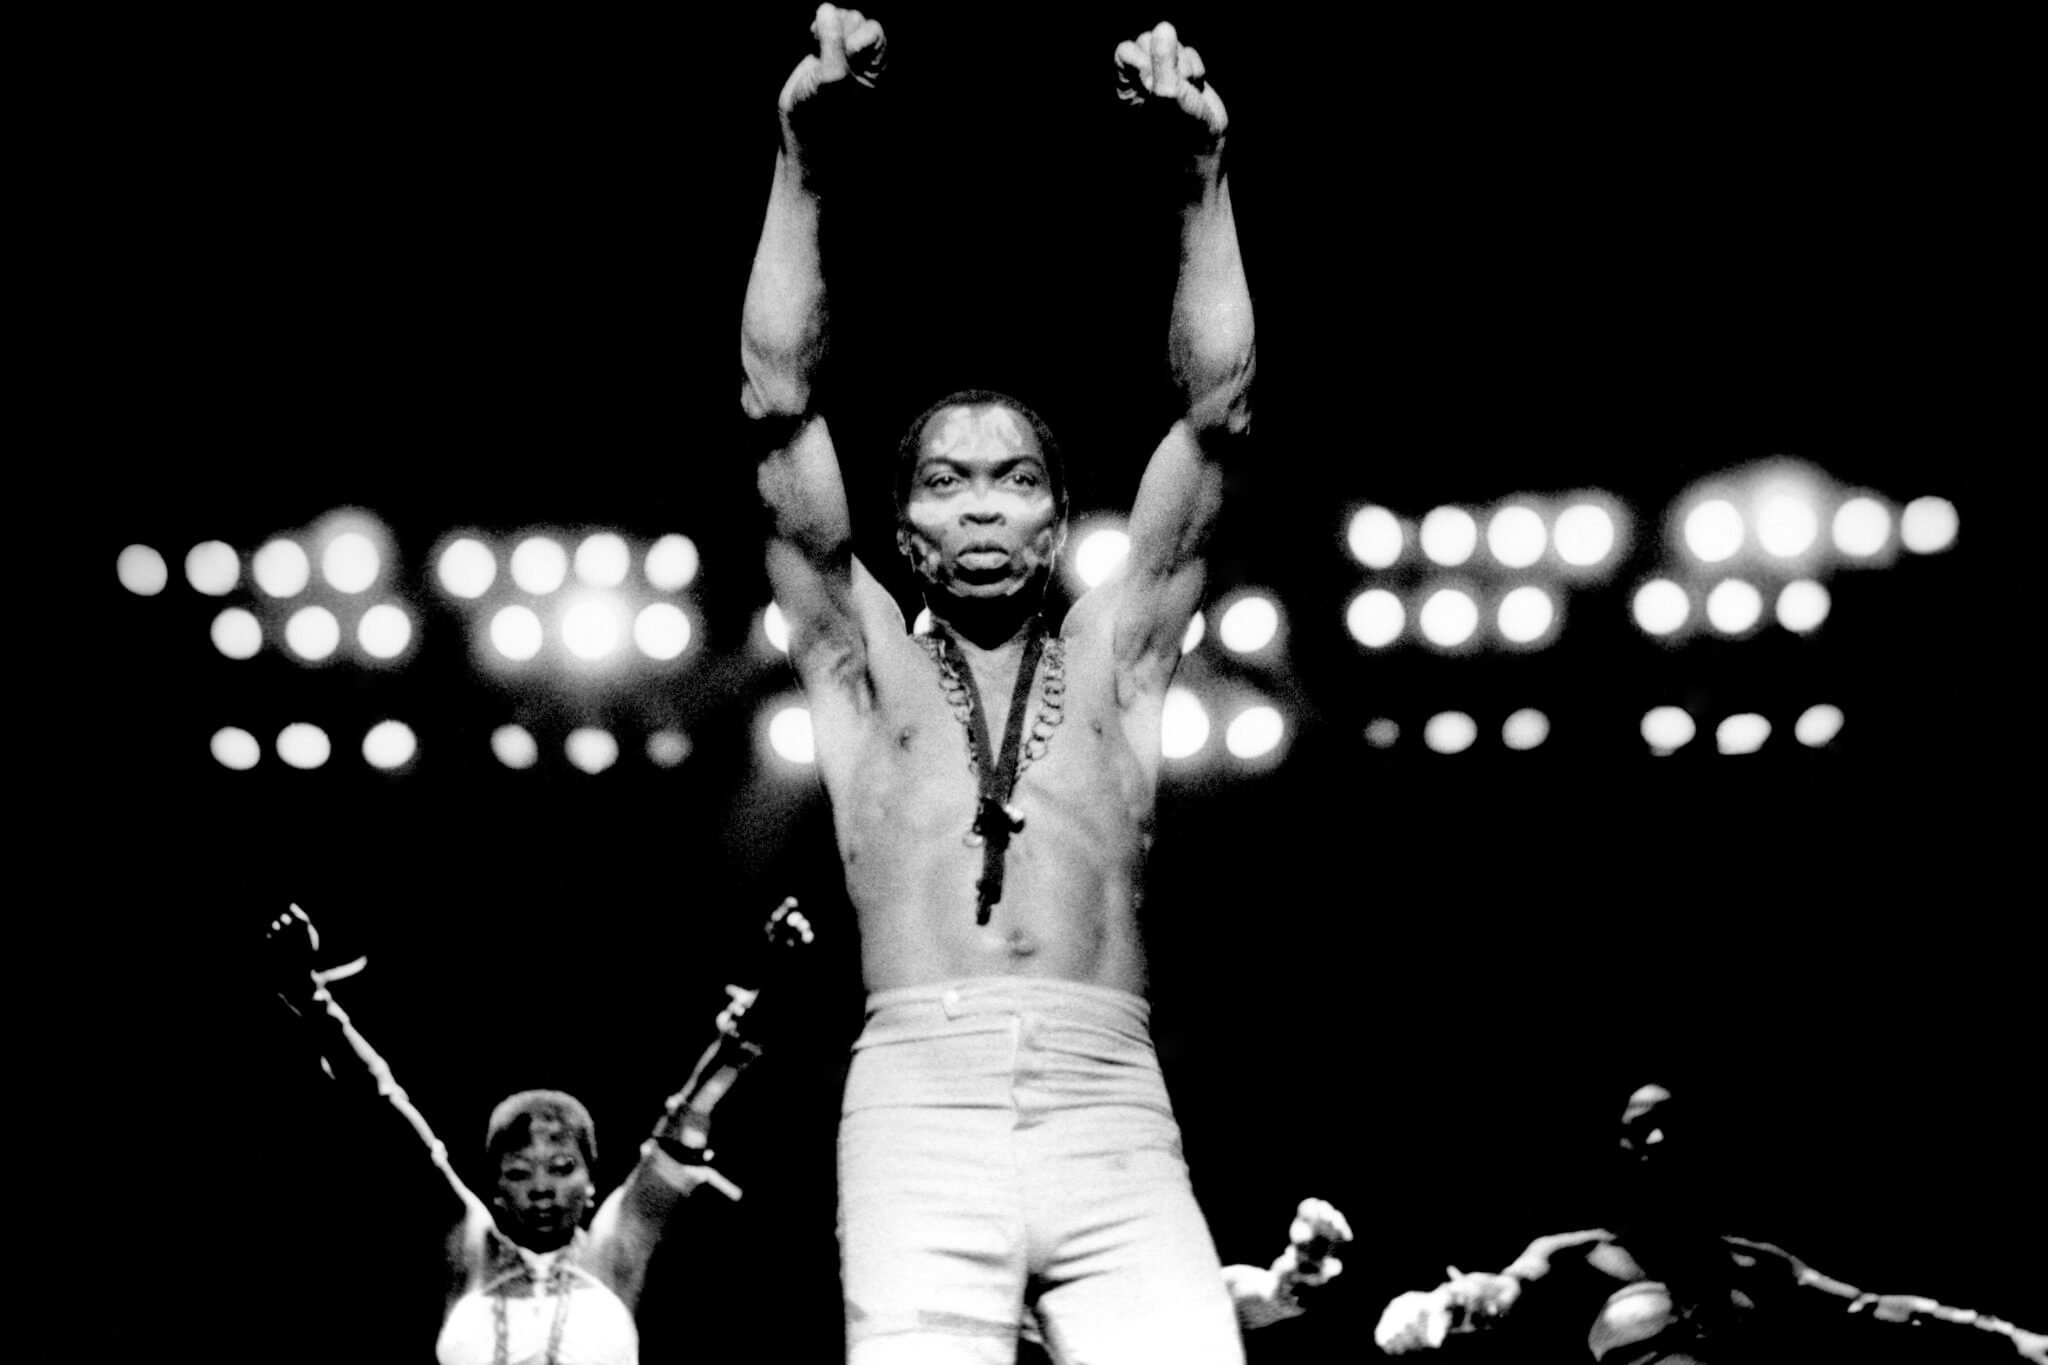 Fela Kick Started the Afrobeat Genre and Afropop Music